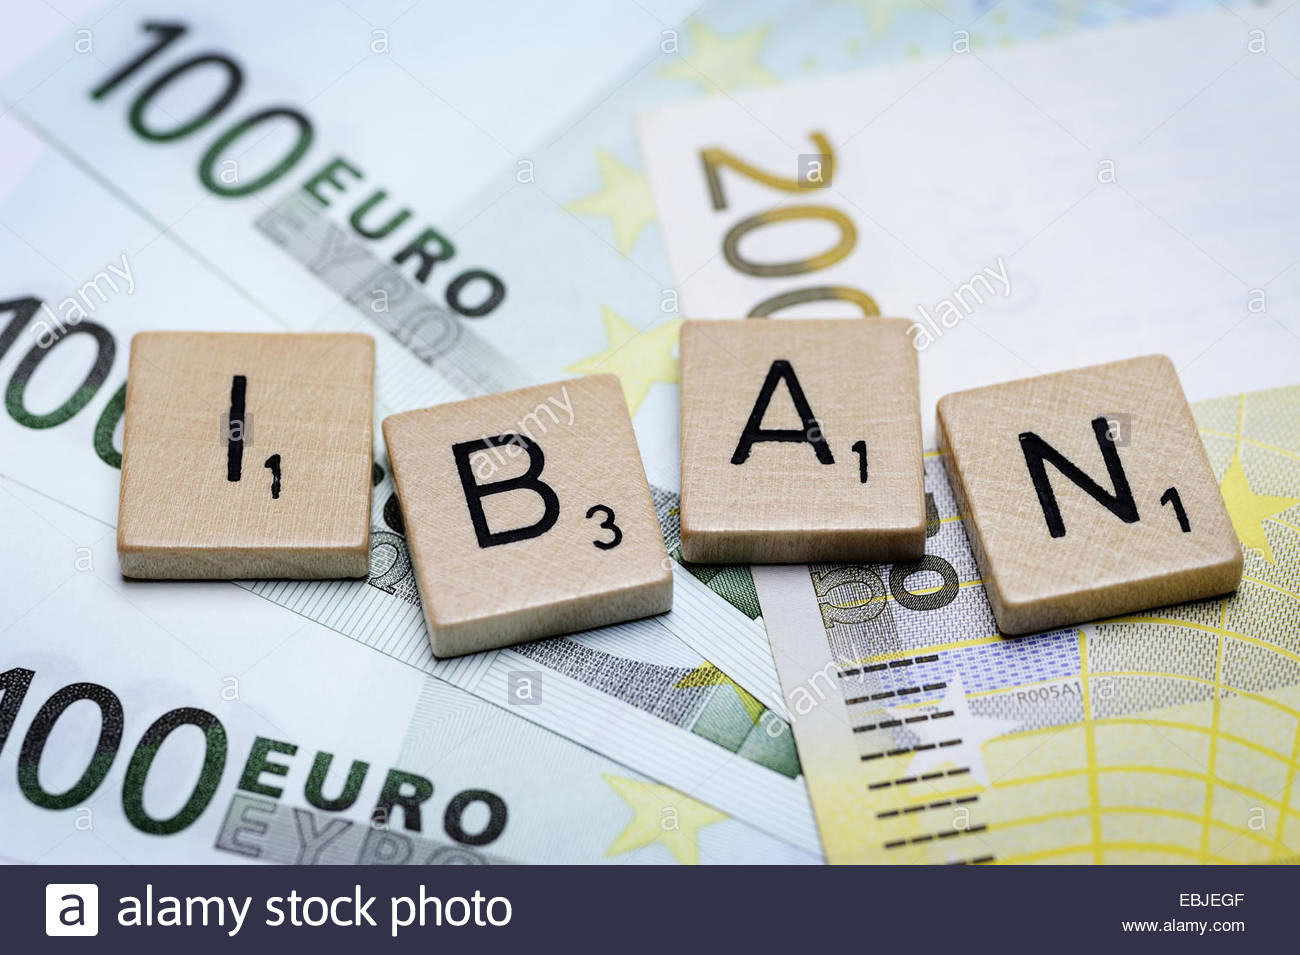 Iban Number Stock Photos & Iban Number Stock Images - Alamy